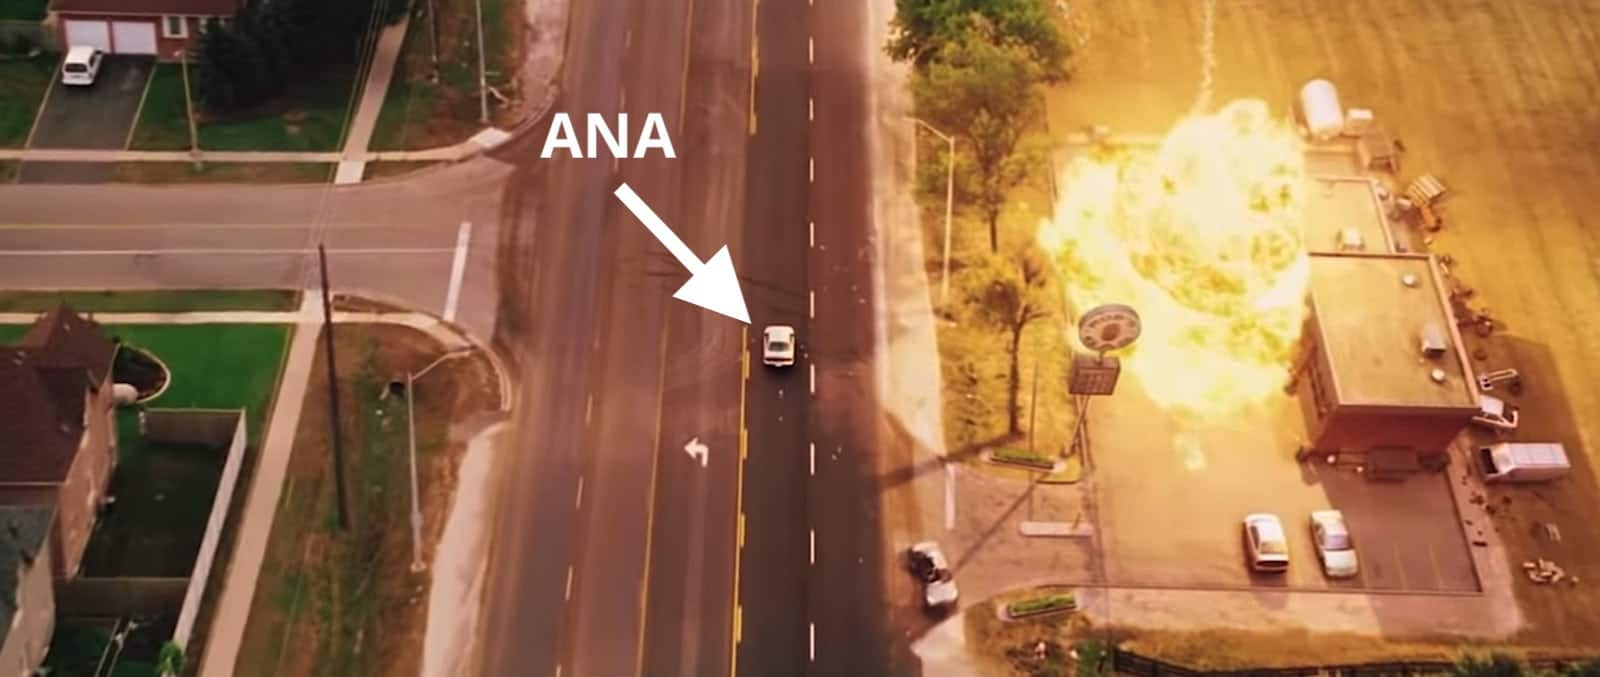 Aerial Shot - Camera Angles and Movement - Car Explosion Shot - Dawn of the Dead